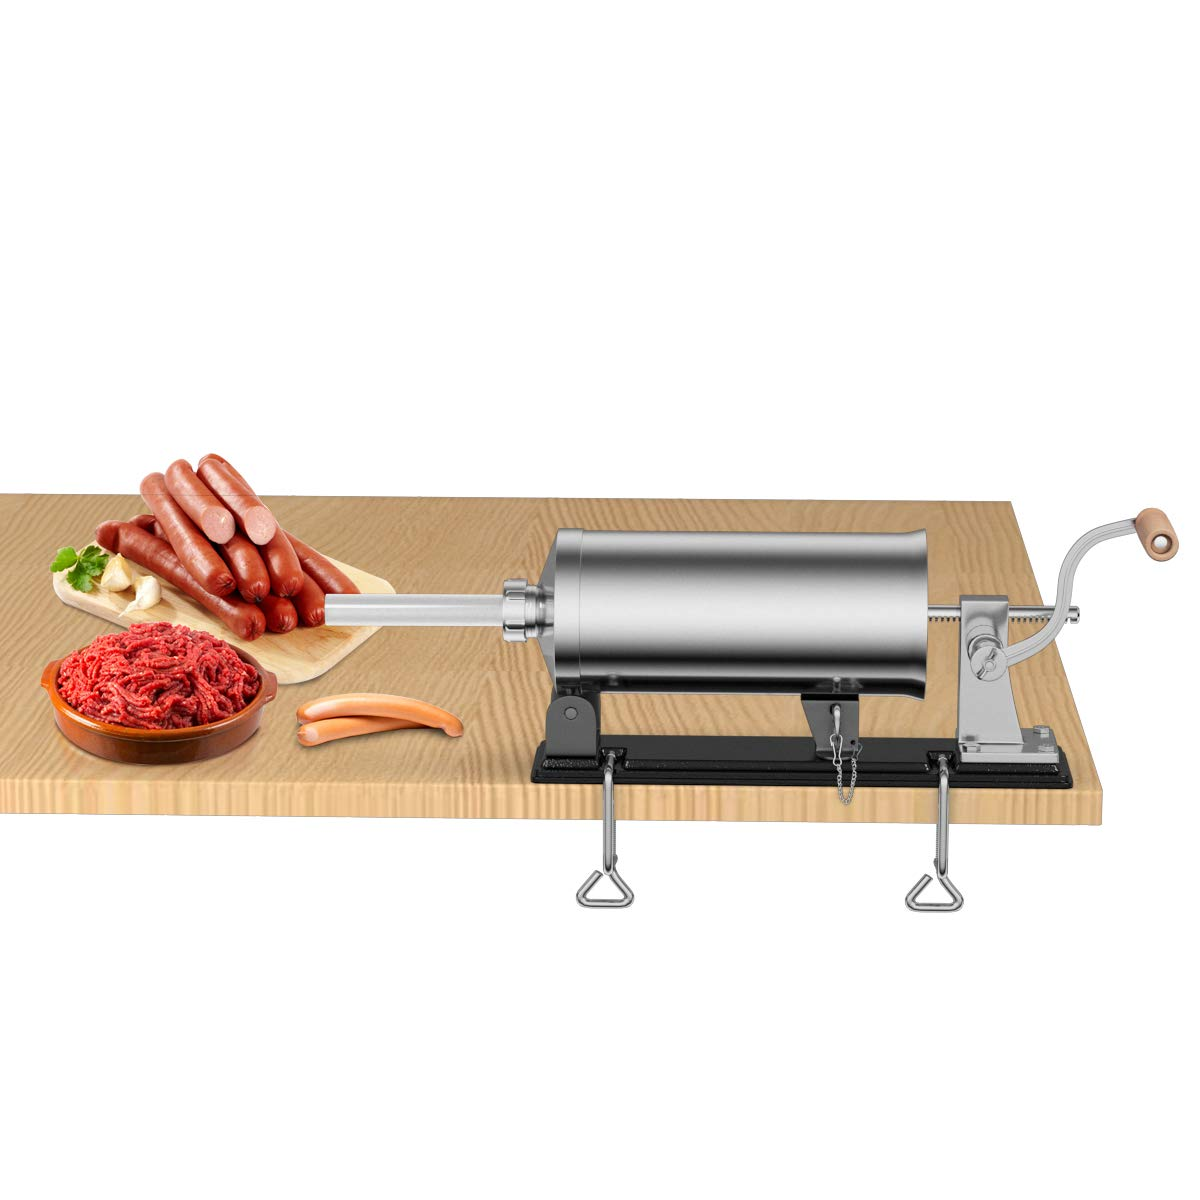 Goplus 8Lb/4.8L Horizontal Sausage Stuffer Maker Stainless Steel Meat Filler Kit w/ 4 Sizes of Food-Grade Sausage Tubes, Commercial Home Use